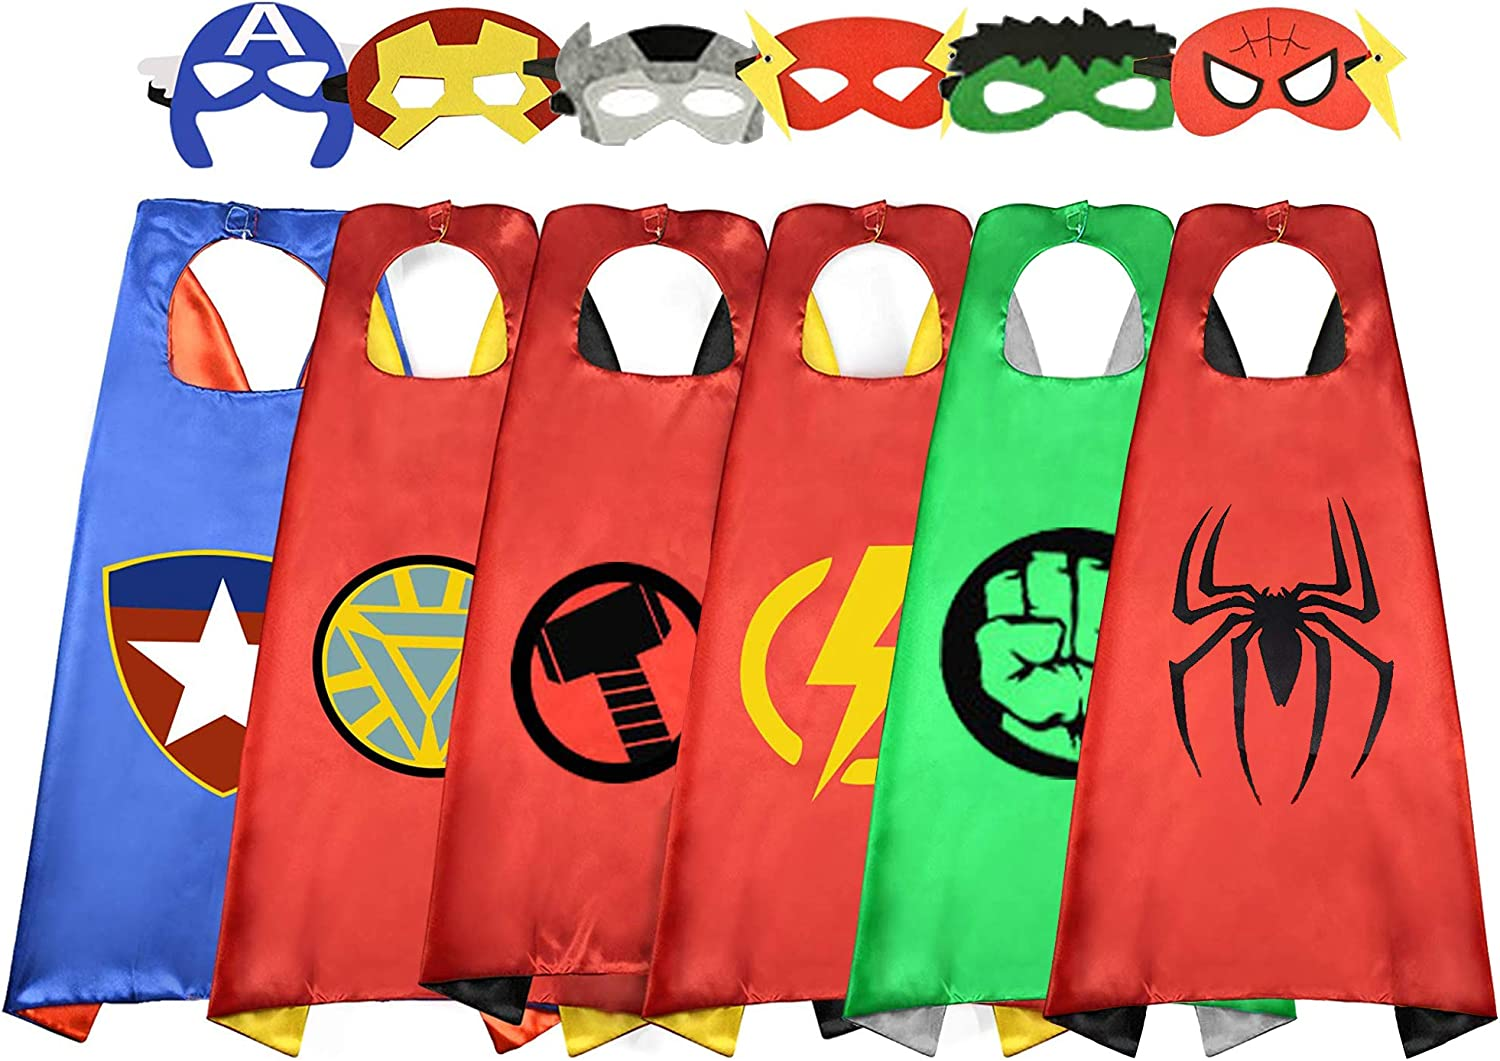 Superhero Cape for Kids, Double-Sided Satin Capes and Mask for Dress Up Costumes (6 Capes)